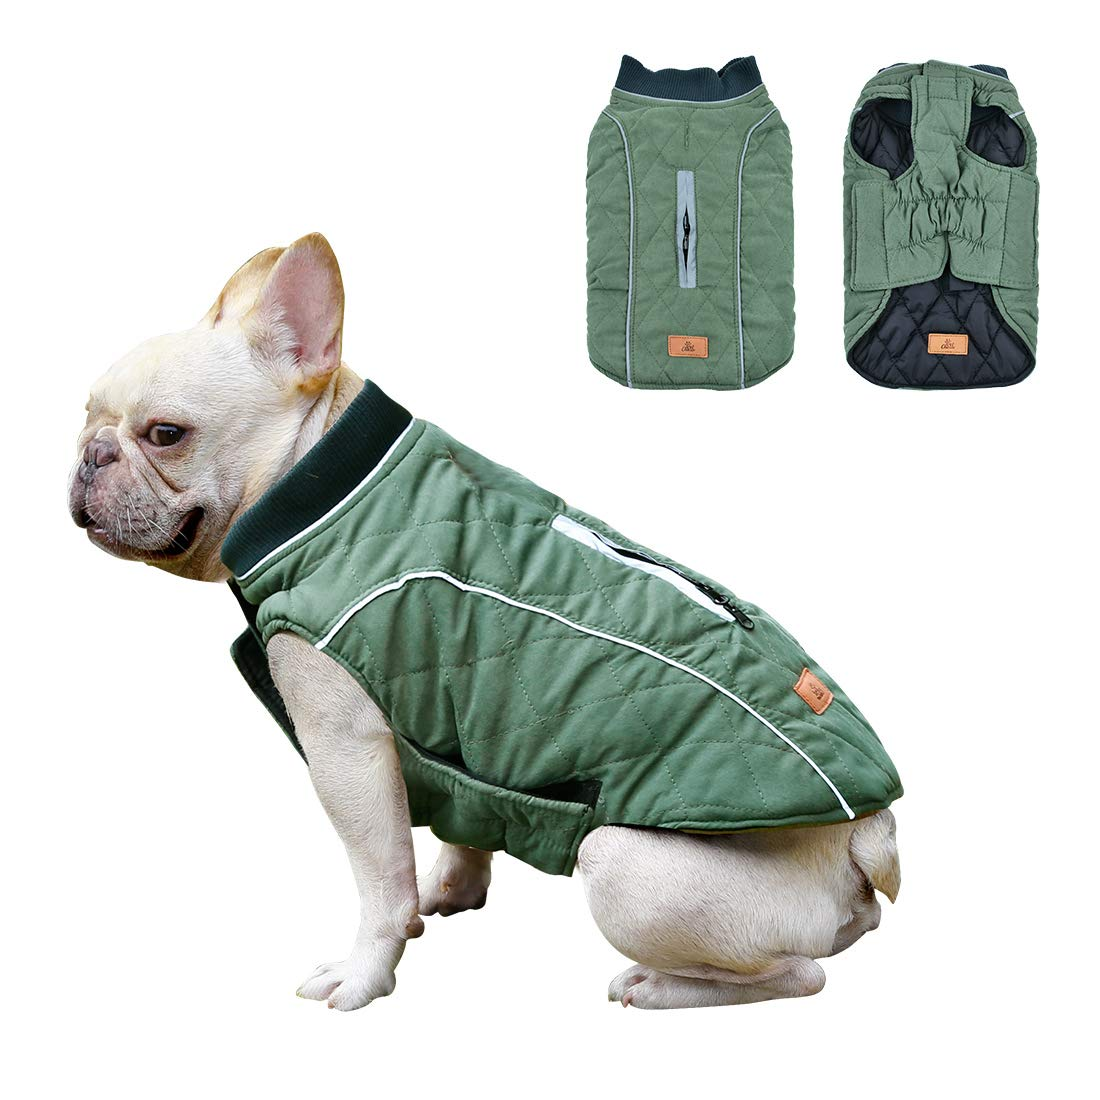 Green XL(Neck 15\ Green XL(Neck 15\ Dog Jacket Waterproof Pet Coat Reversible Windproof Cat Sweater Reflective Strips Winter Warm Puppy Vest for Small Medium Large Dogs Green XL